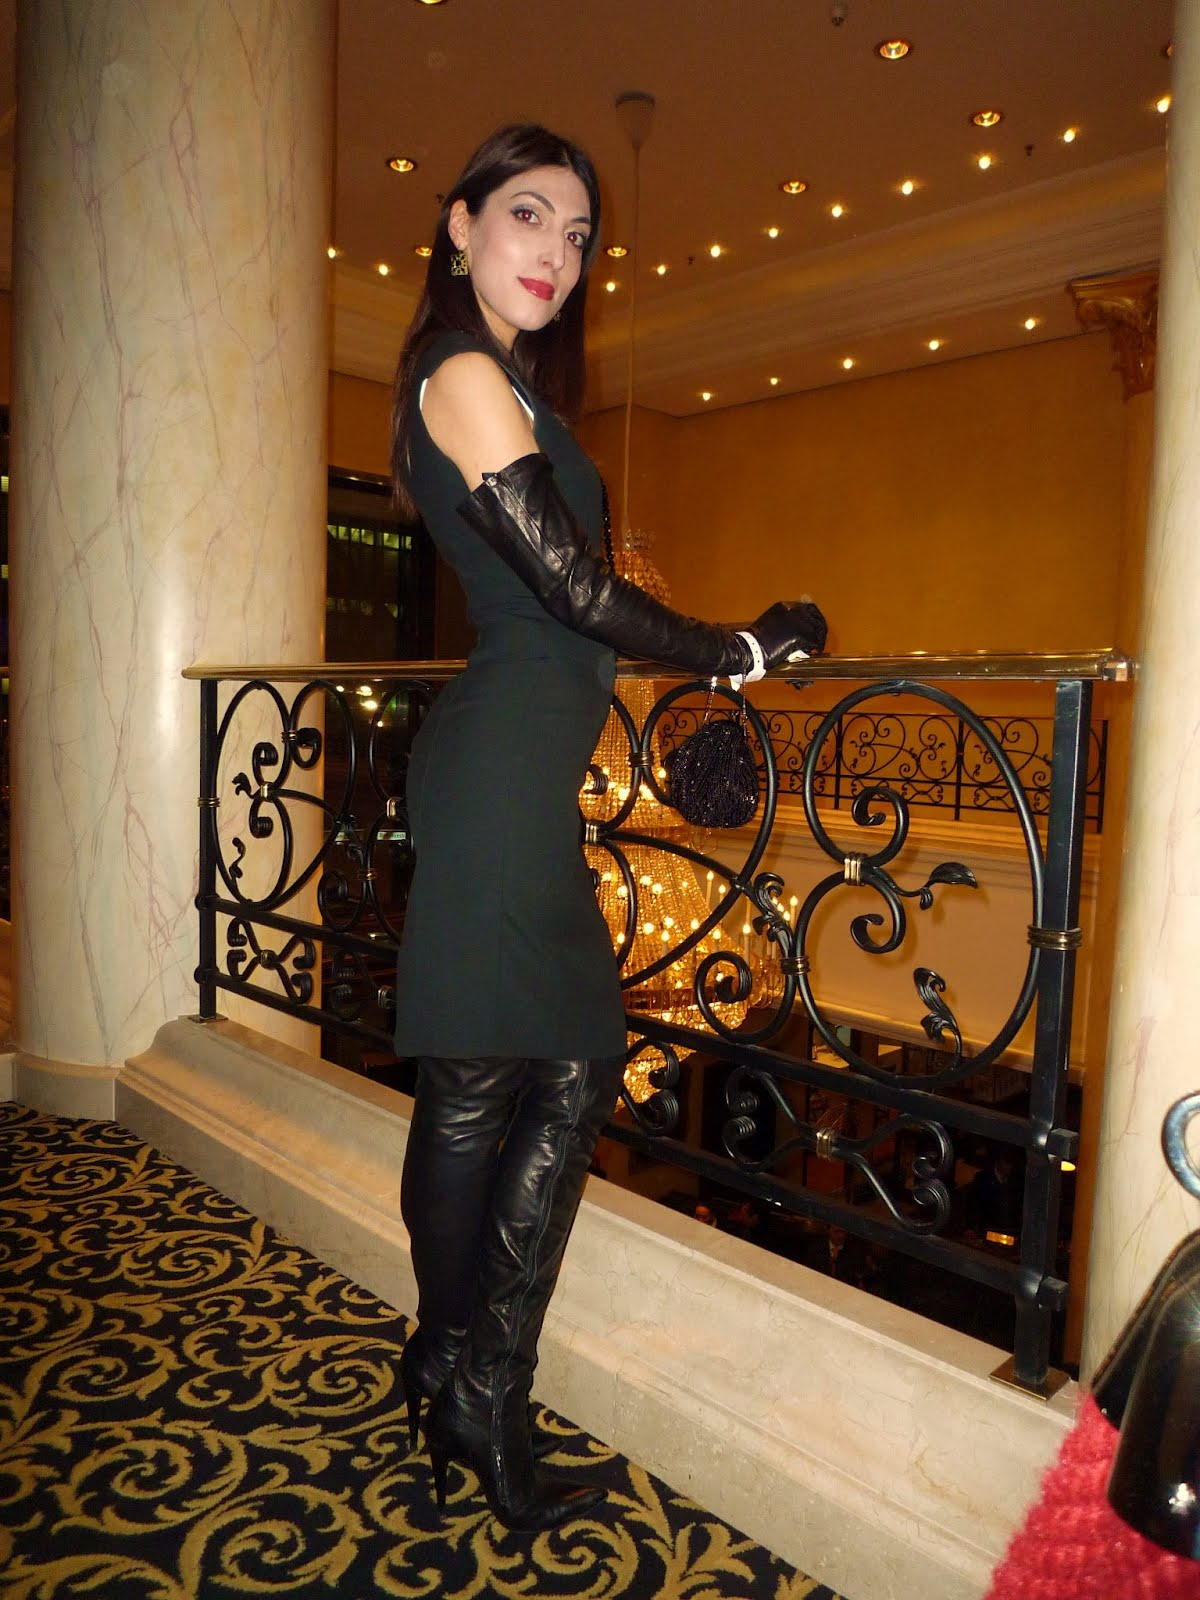 Tamuna Gadelia at the Berlinale Film Festival in Fernando Berlin Boots and Gloves